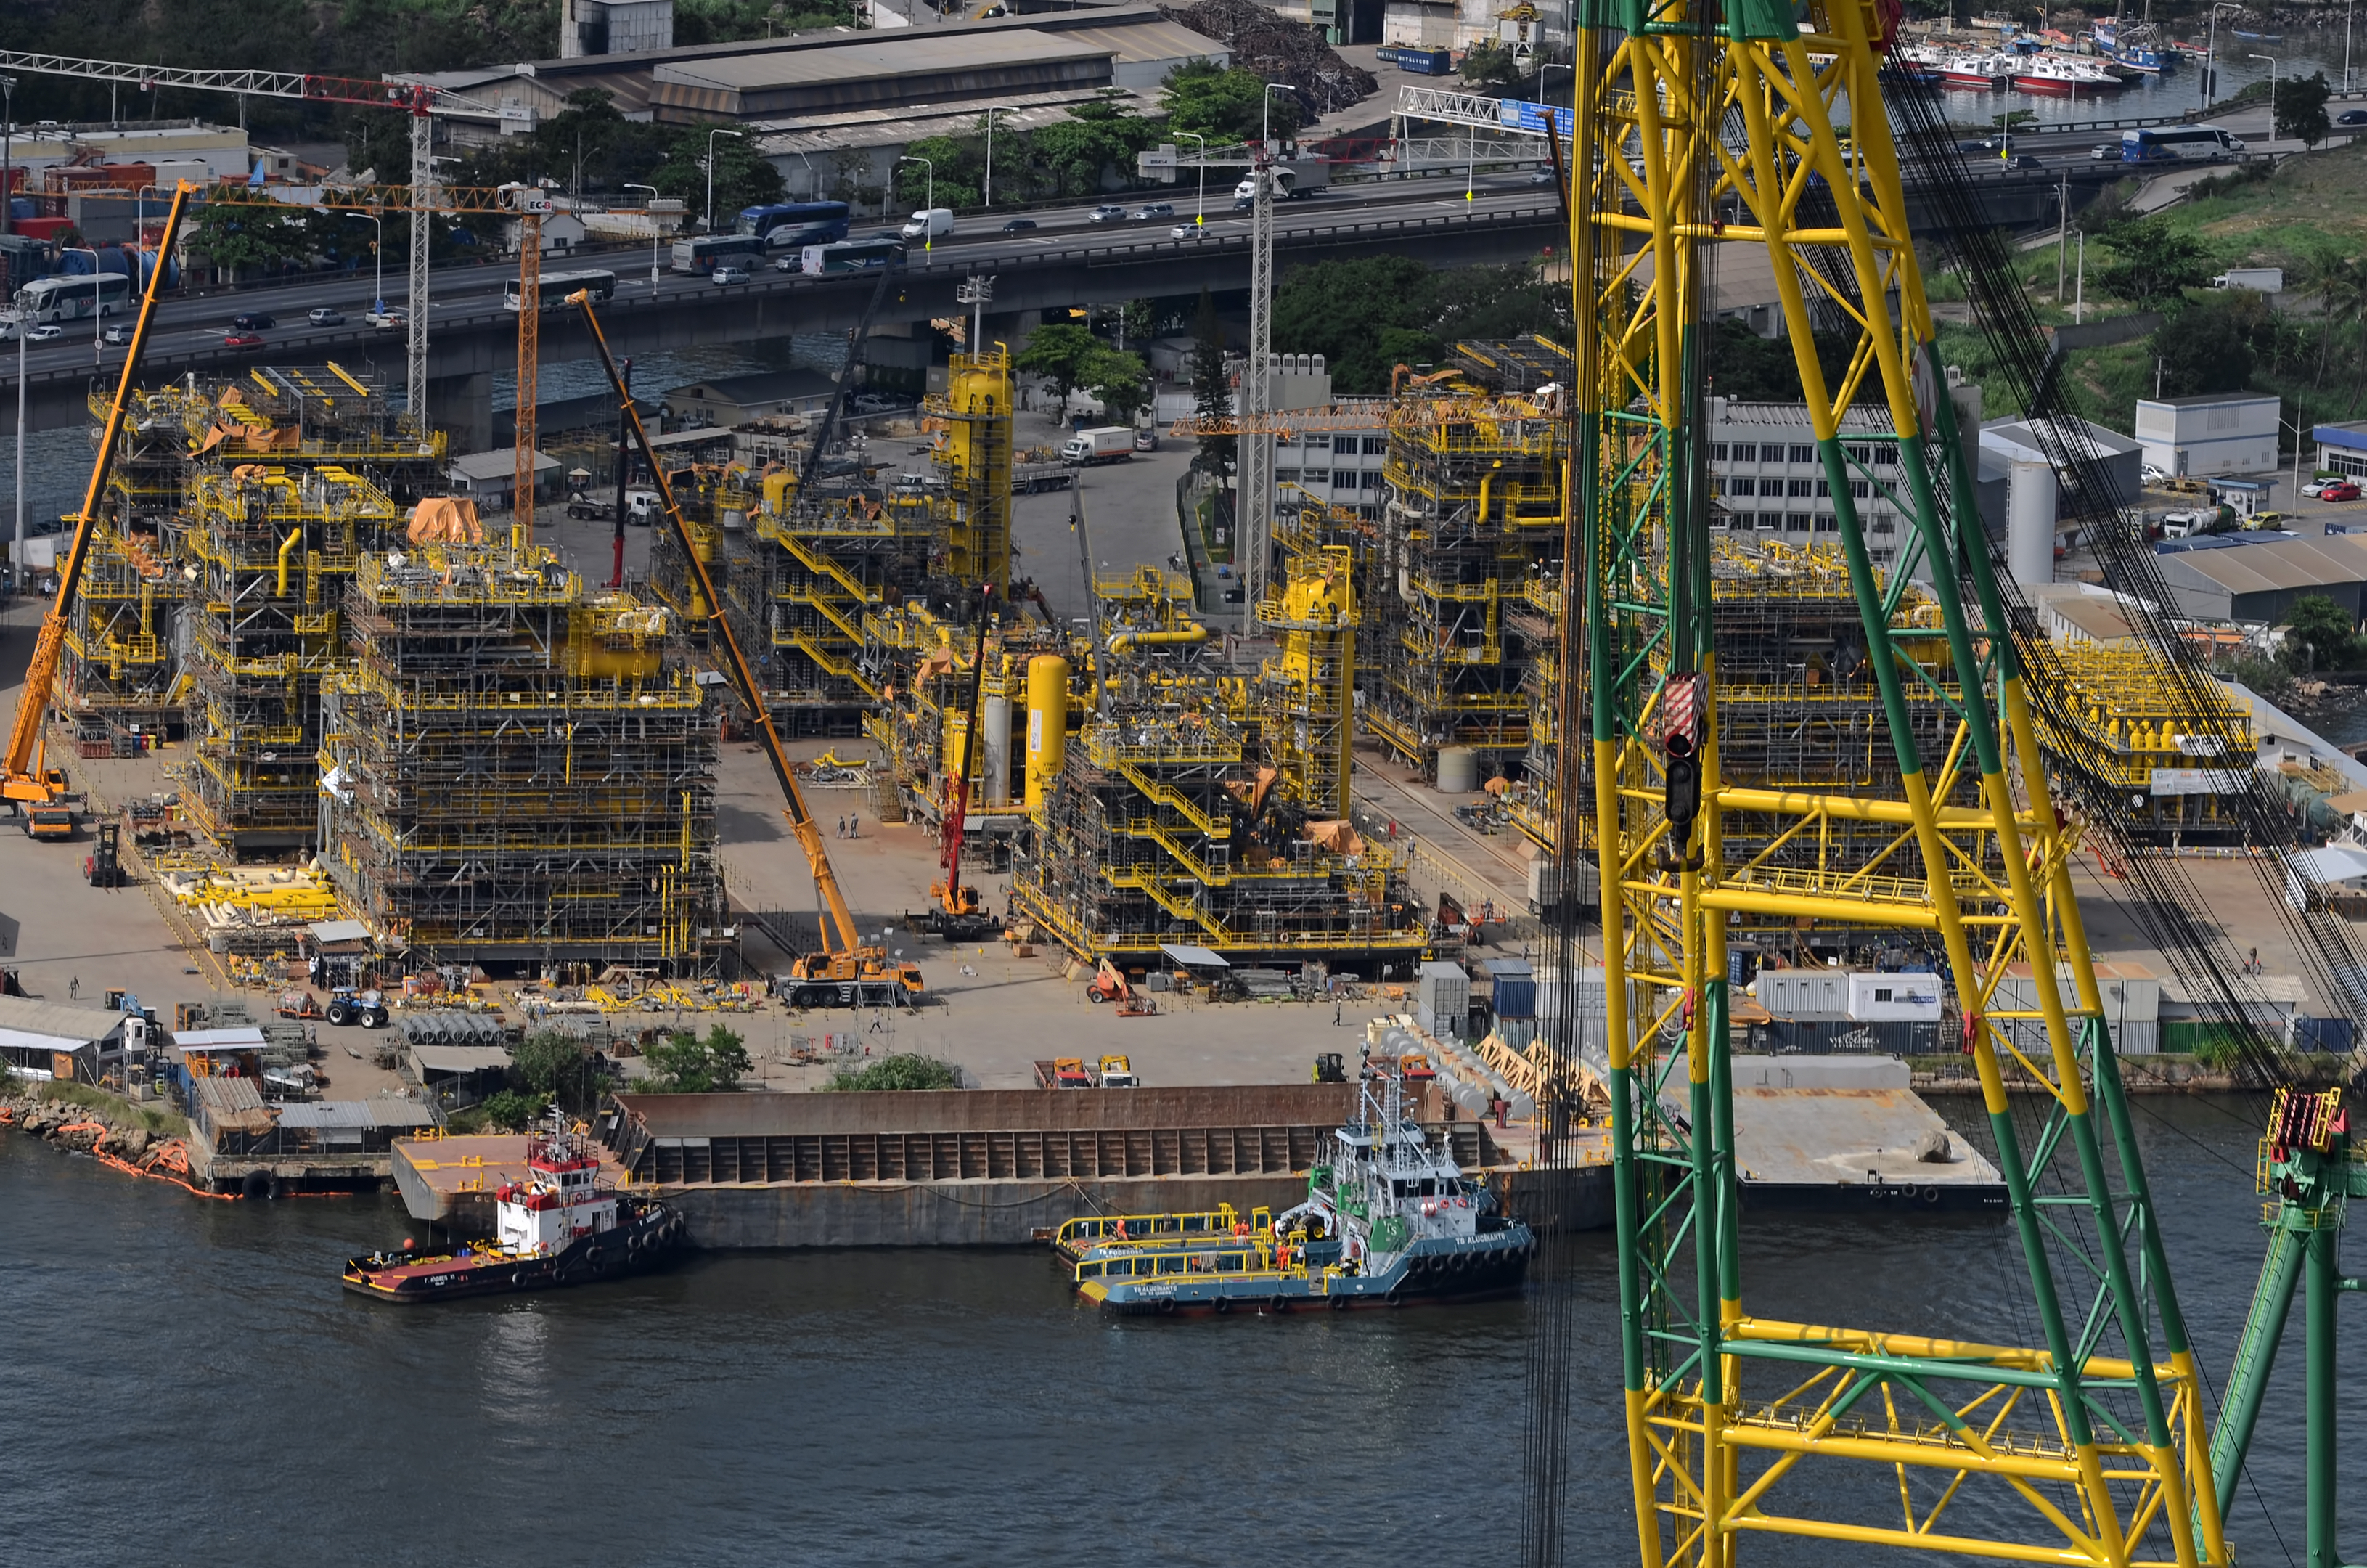 Modules being constructed at Brasa shipyard, Brazil for twin FPSOs Cidade de Marica and Cidade de Saquarema. Sobrevôo ao site do Estaleiro Brasa em Abril 2015